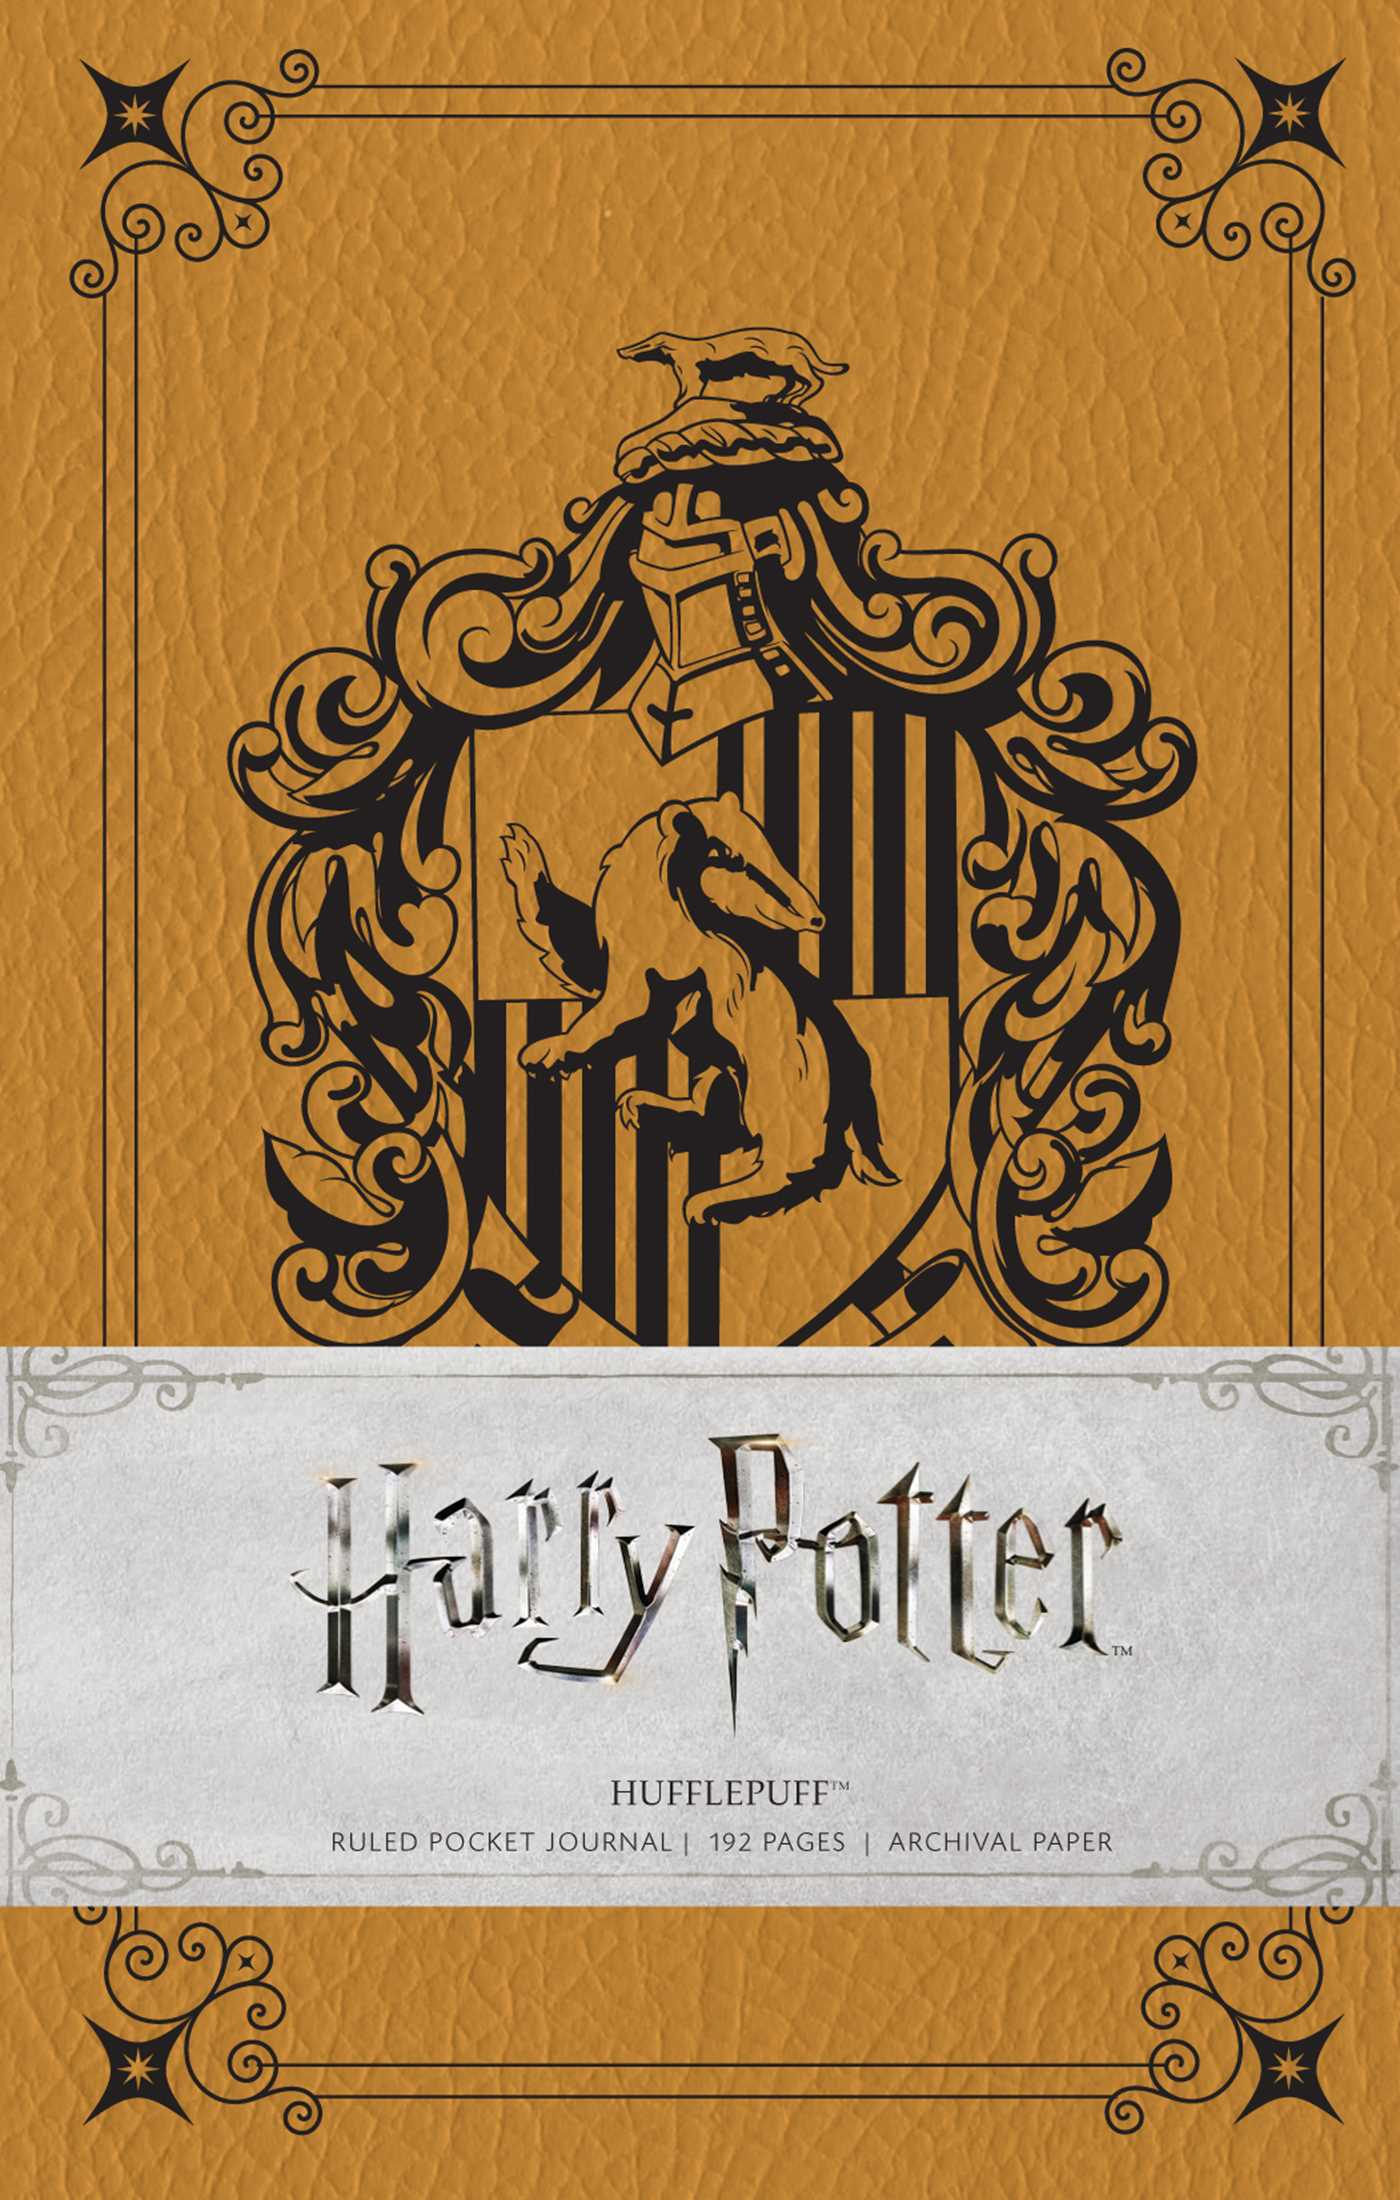 Harry Potter Book Cover Hd : Harry potter hufflepuff ruled pocket journal book by